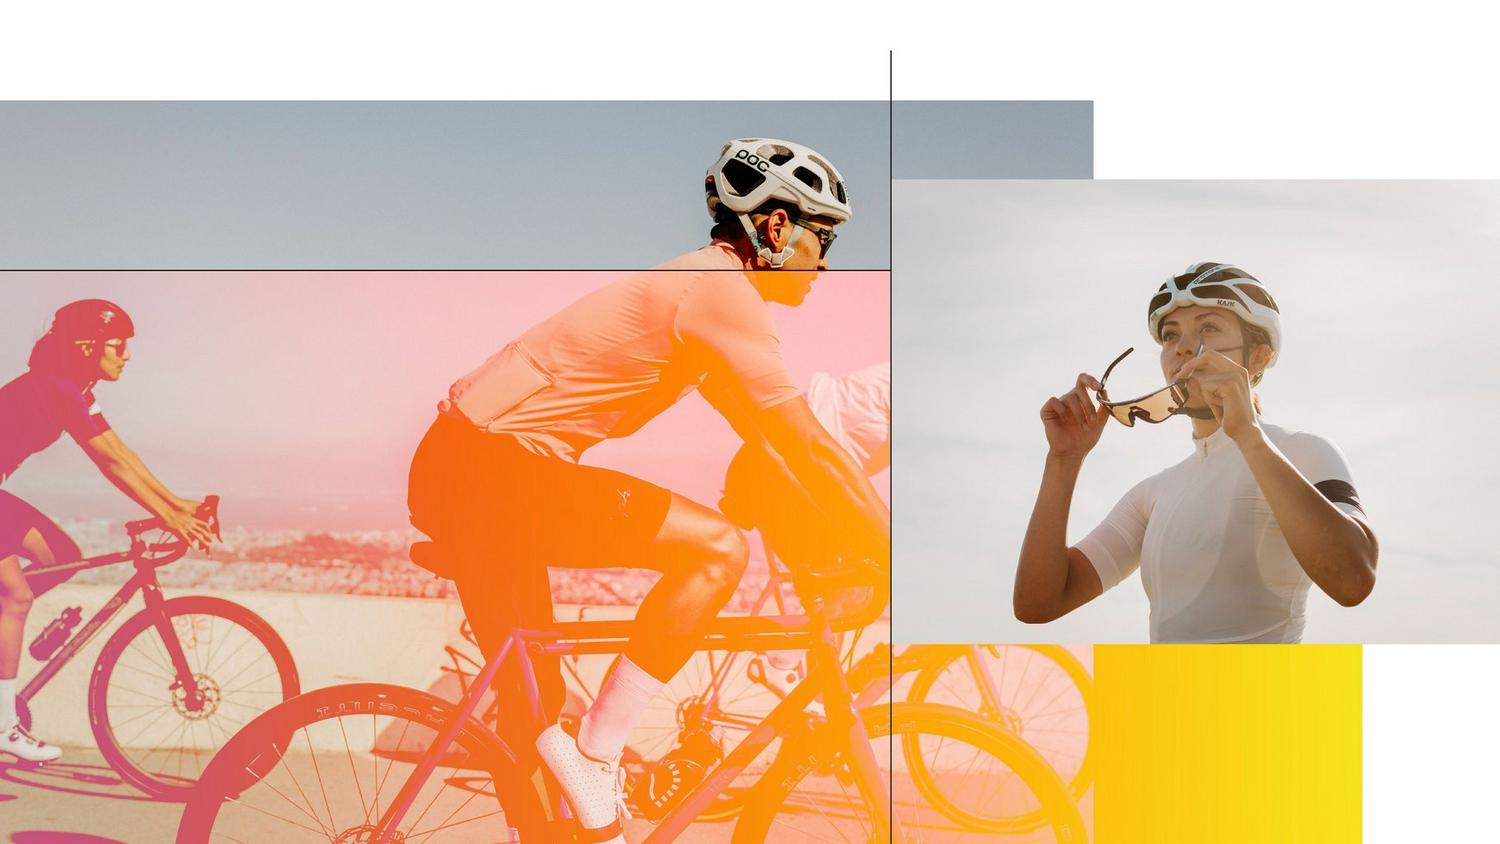 Rapha's Guide To Hot Weather Cycling Guide - 2020 Best Summer Clothing